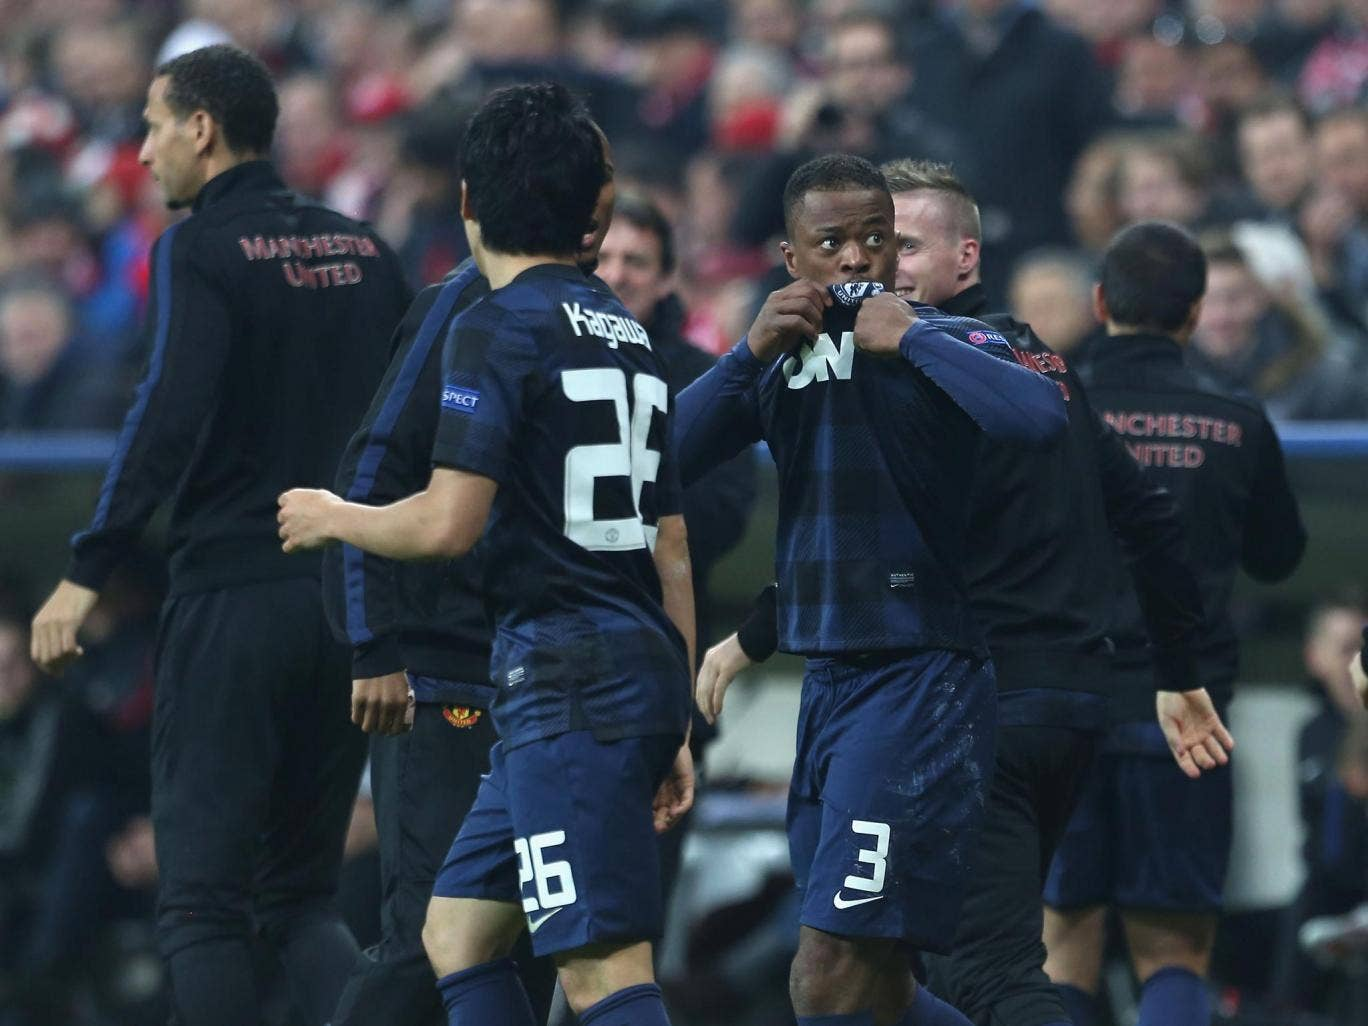 Manchester United's joy, after Patrice Evra's goal against Bayern Munich, was short-lived